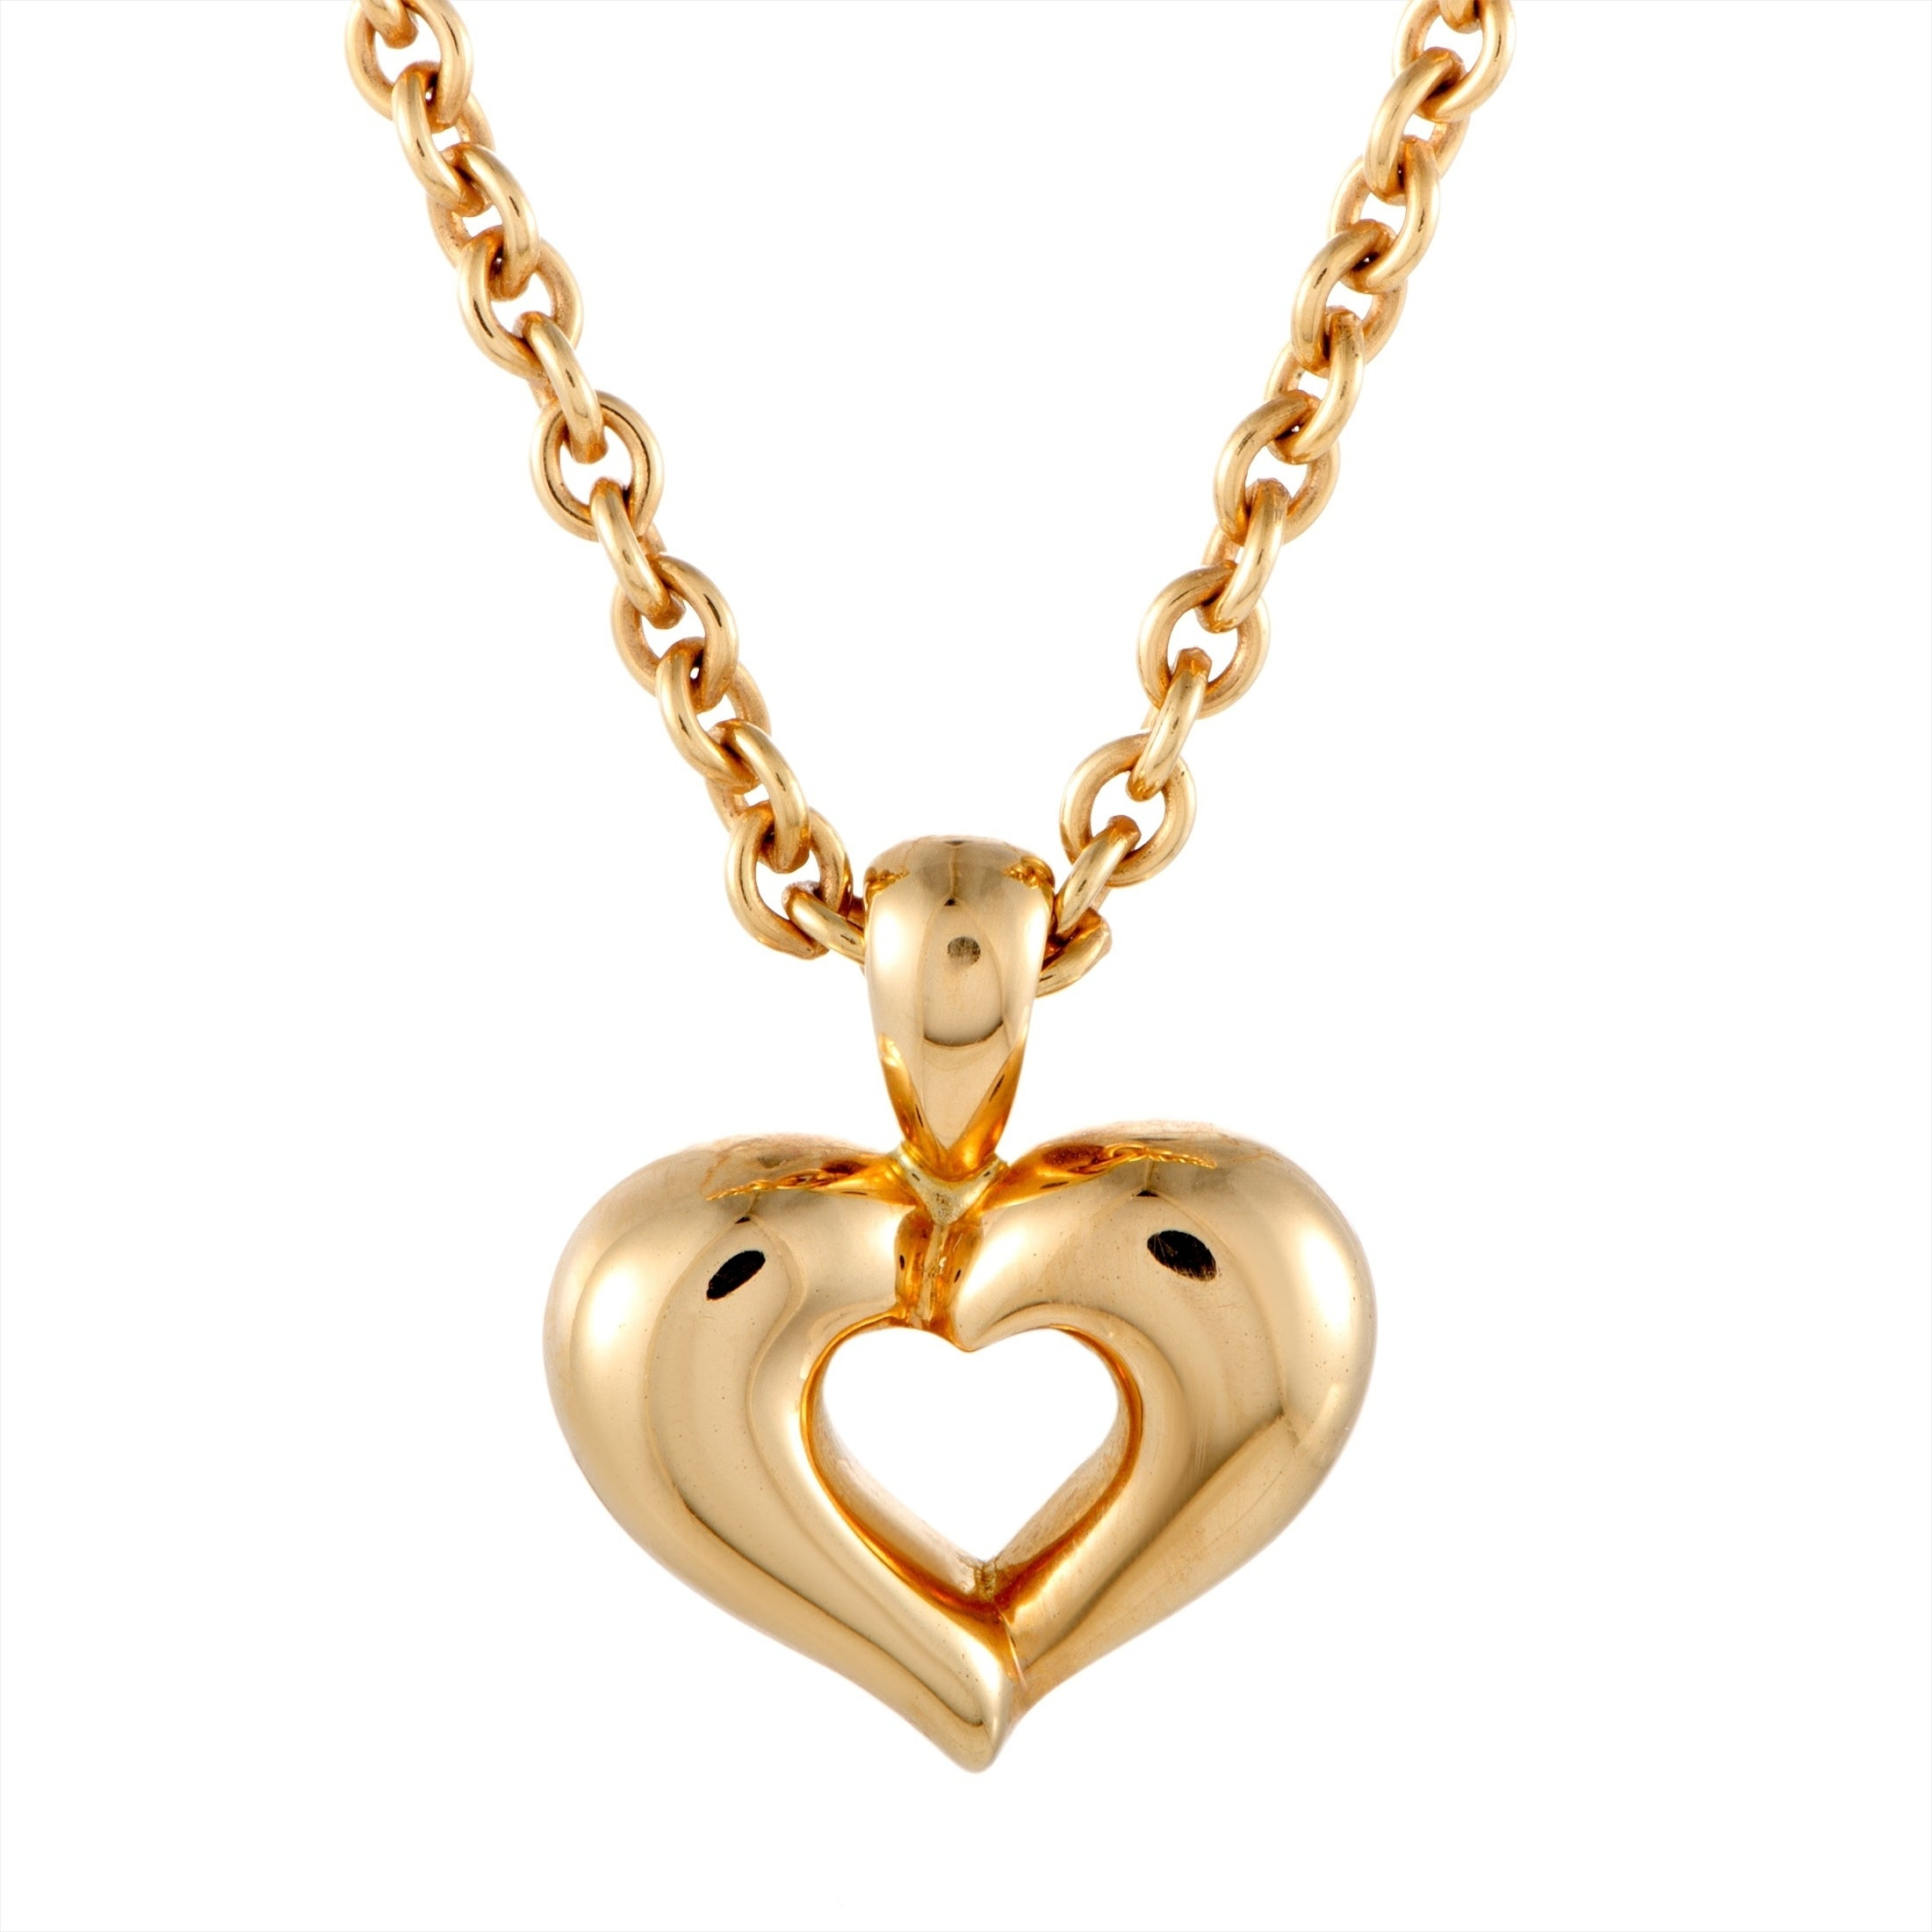 Van Cleef & Arpels Yellow Gold Heart Pendant Choker Necklace Regarding Best And Newest Knotted Hearts T Bar Necklaces (Gallery 23 of 25)